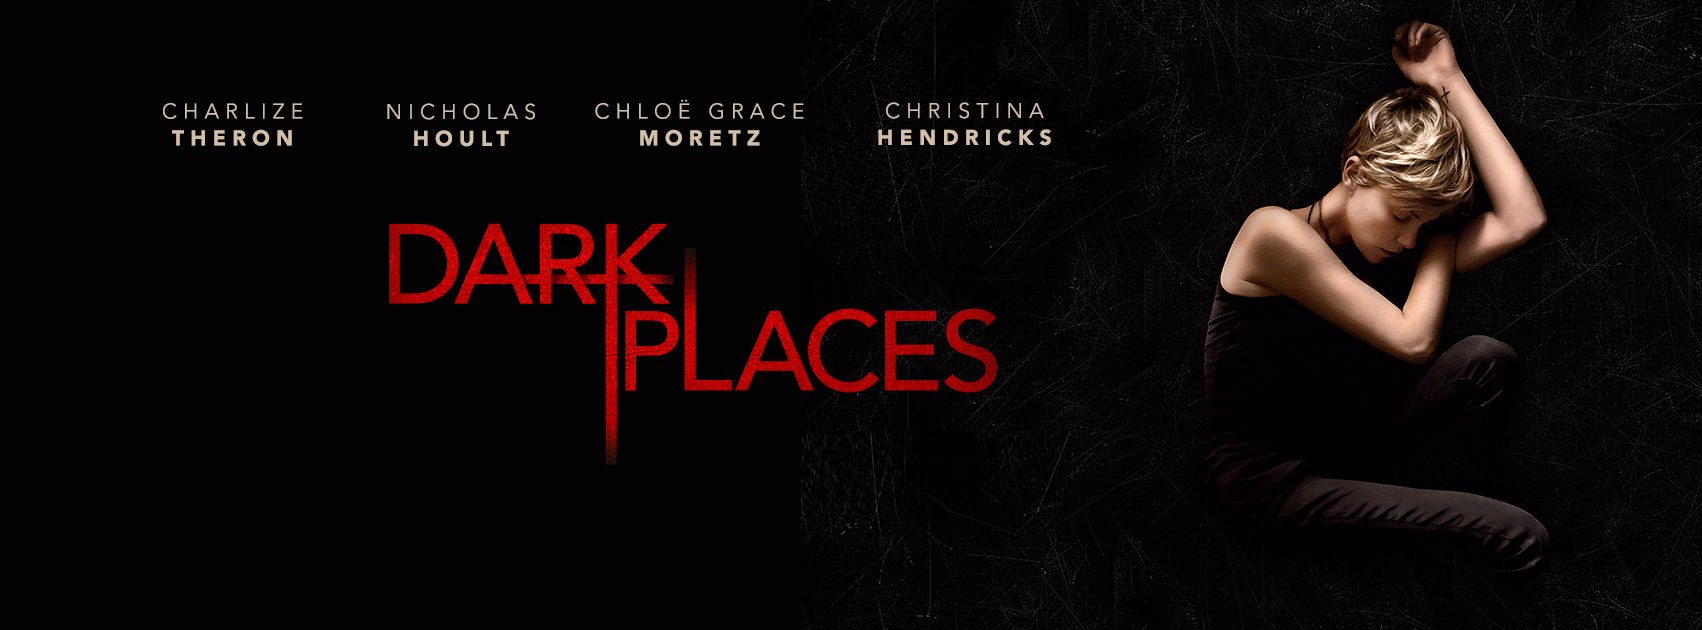 Dark Places Movie Starring Charlize Theron